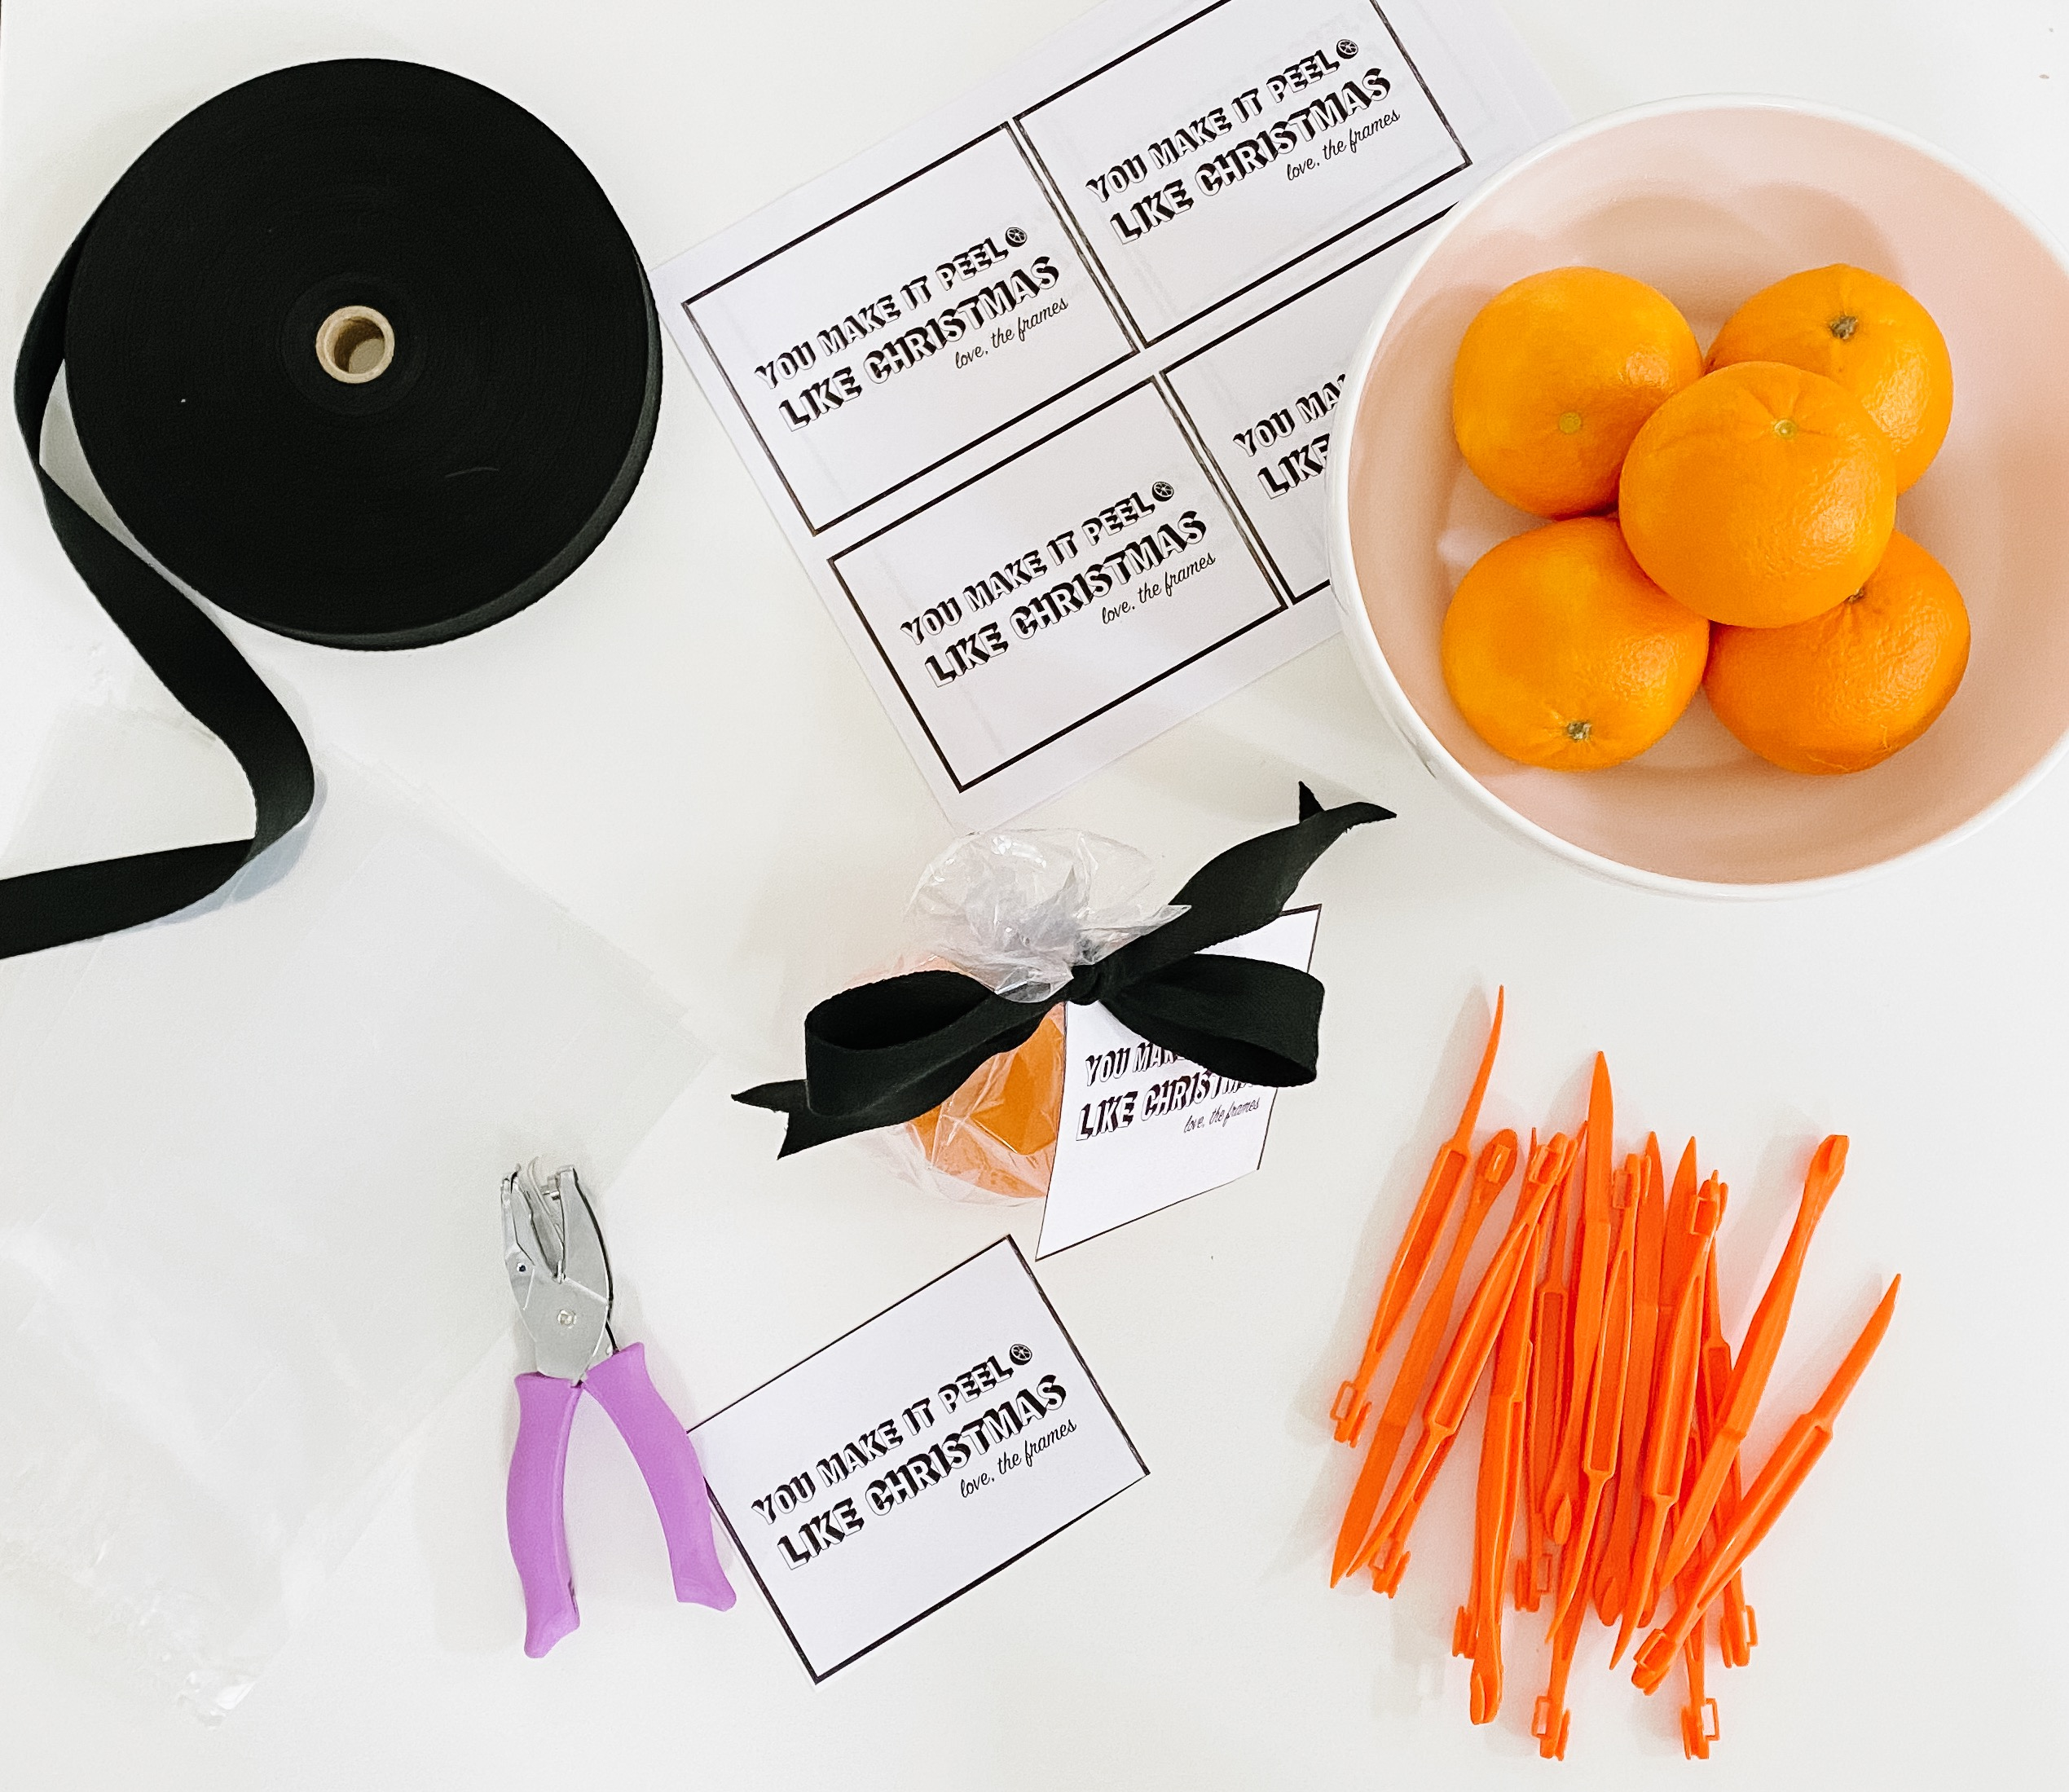 $1 Neighbor Gift Idea | Orange Peeler Neighbor Gift